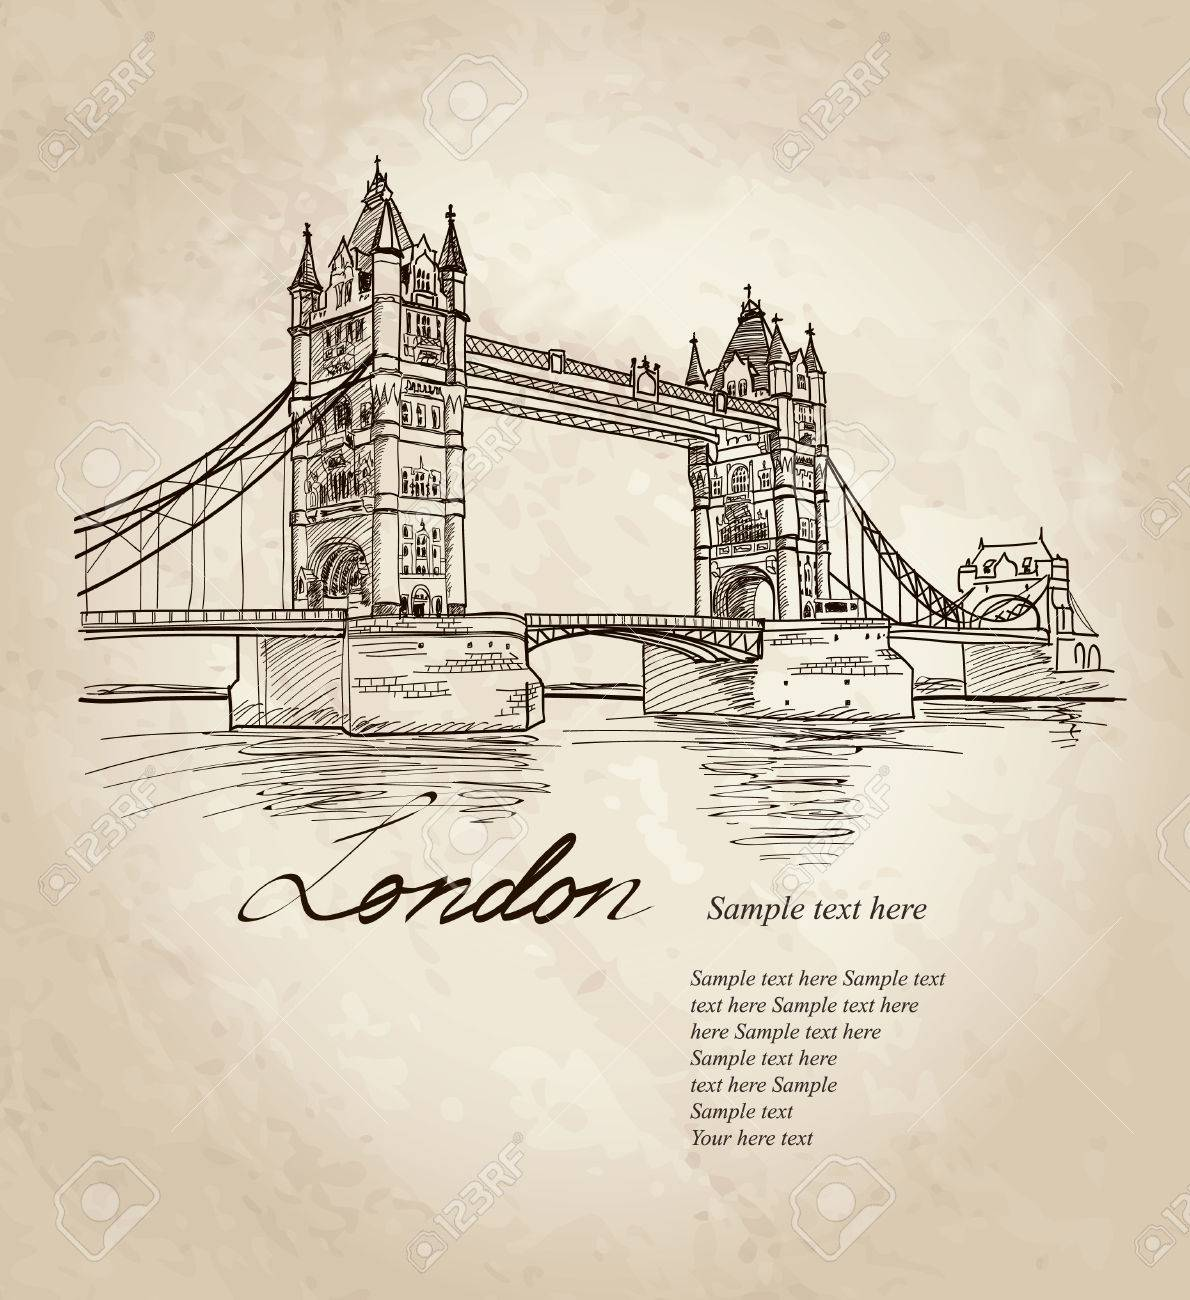 Tower Bridge Londres Angleterre Royaume Uni En Europe Vector Illustration Doodle Dessin à La Main